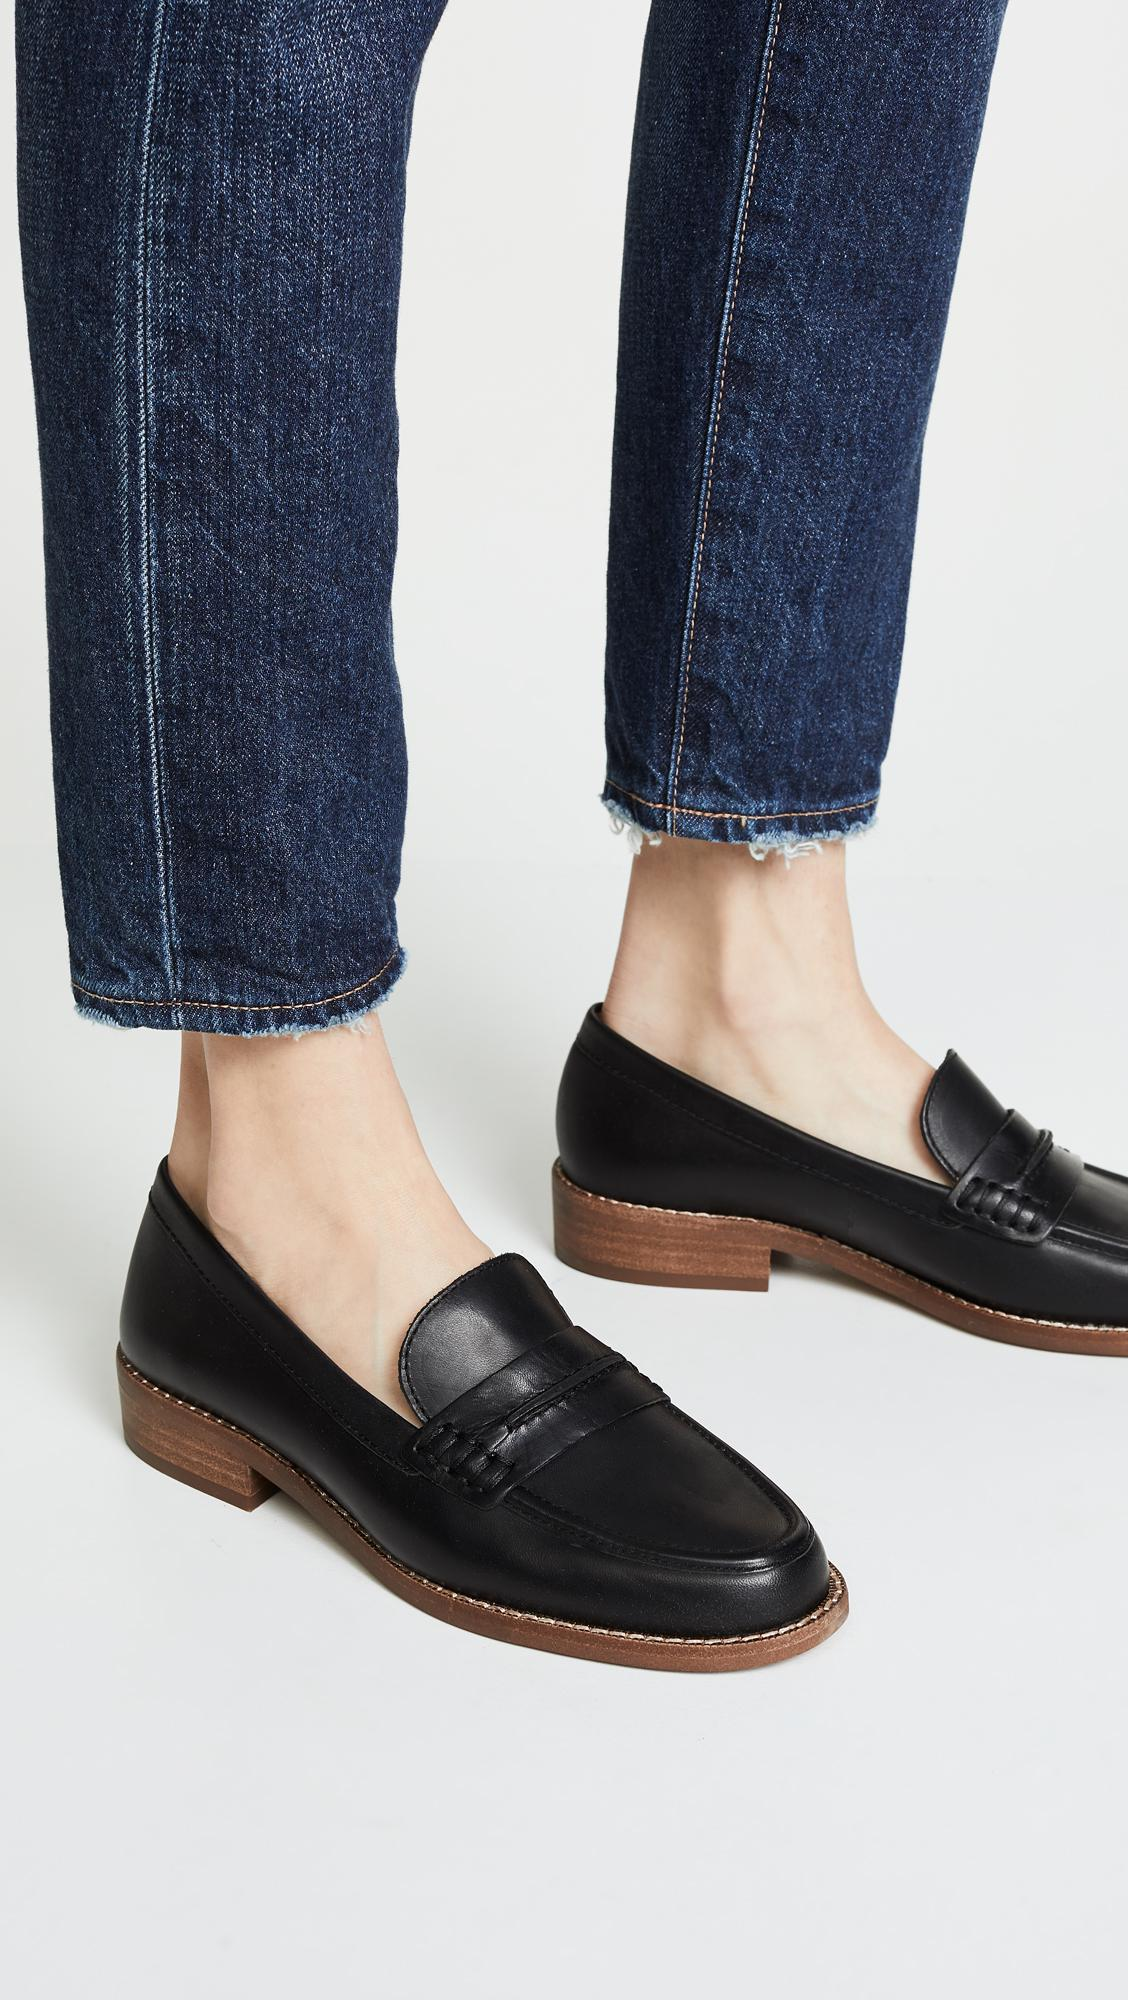 7634fe5de2b Madewell - Black The Elinor Loafers - Lyst. View fullscreen